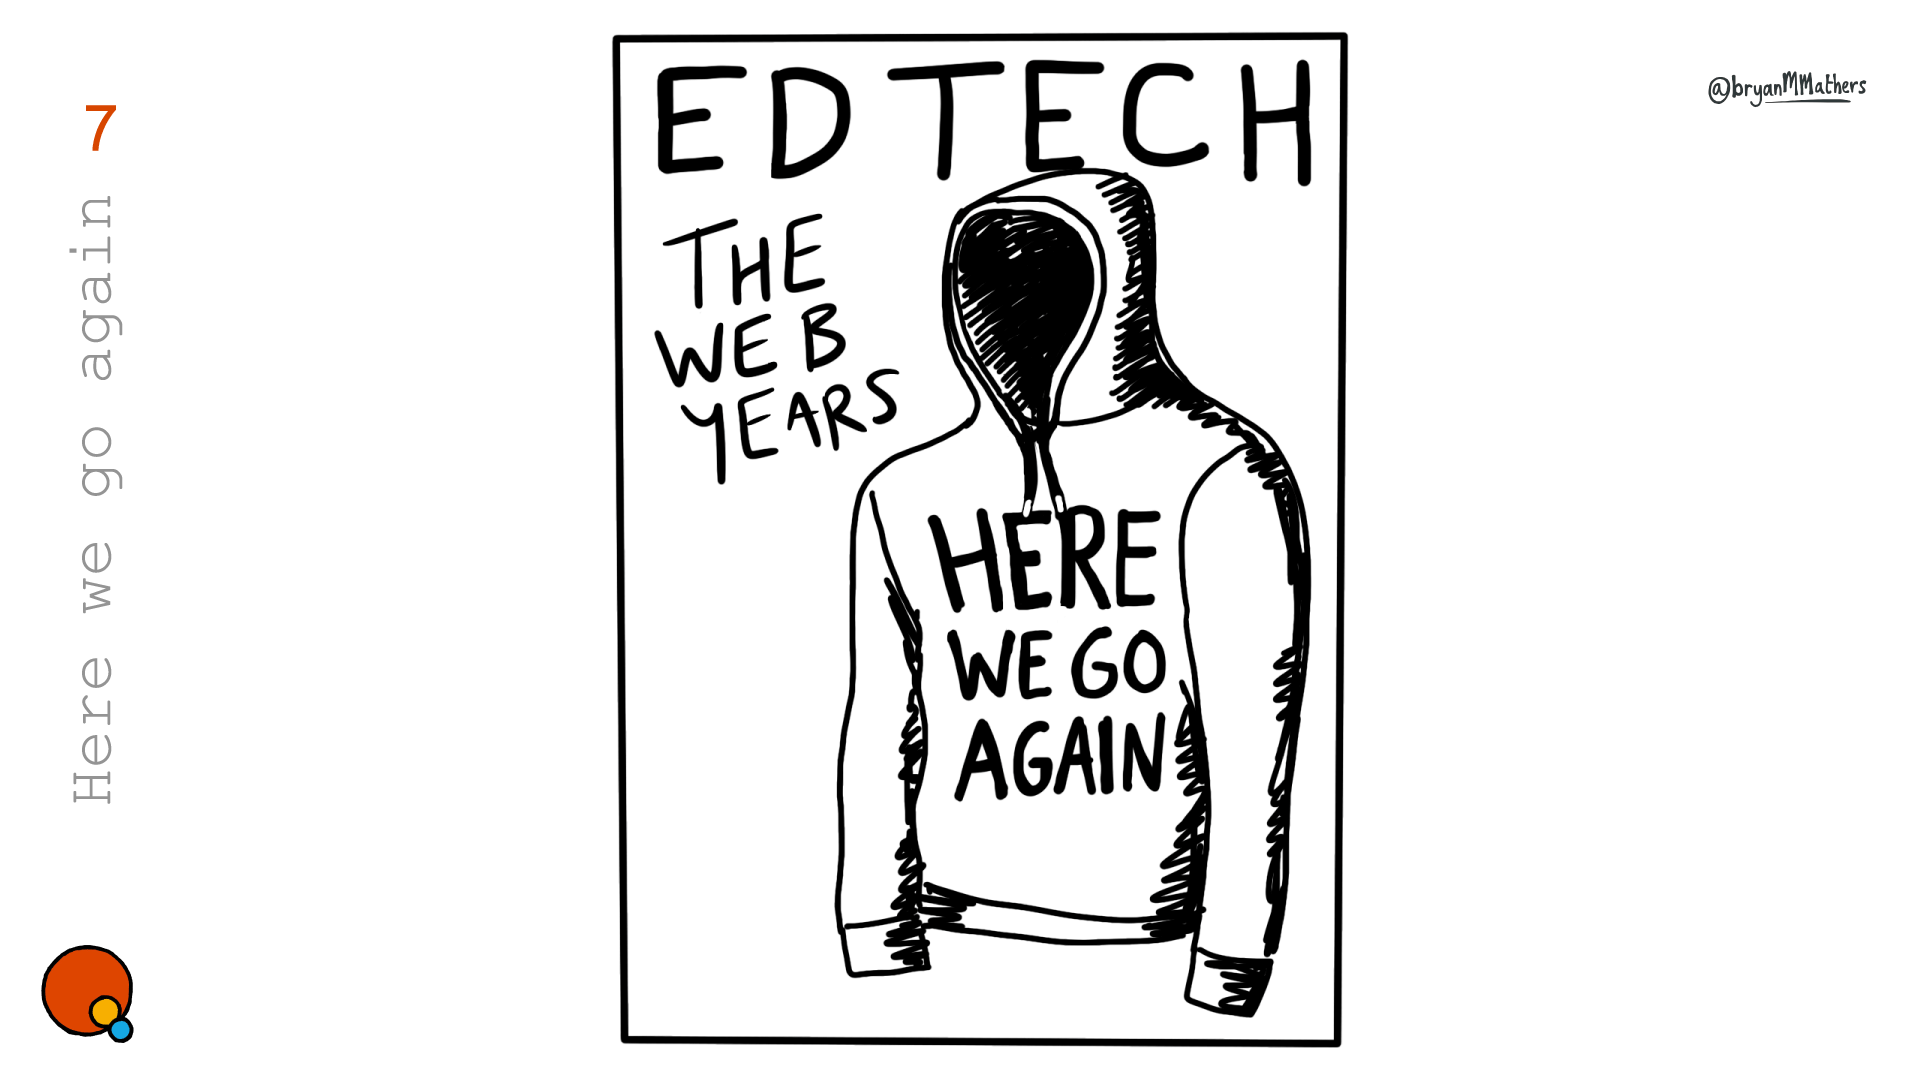 25 Years of EdTech - The Web Years